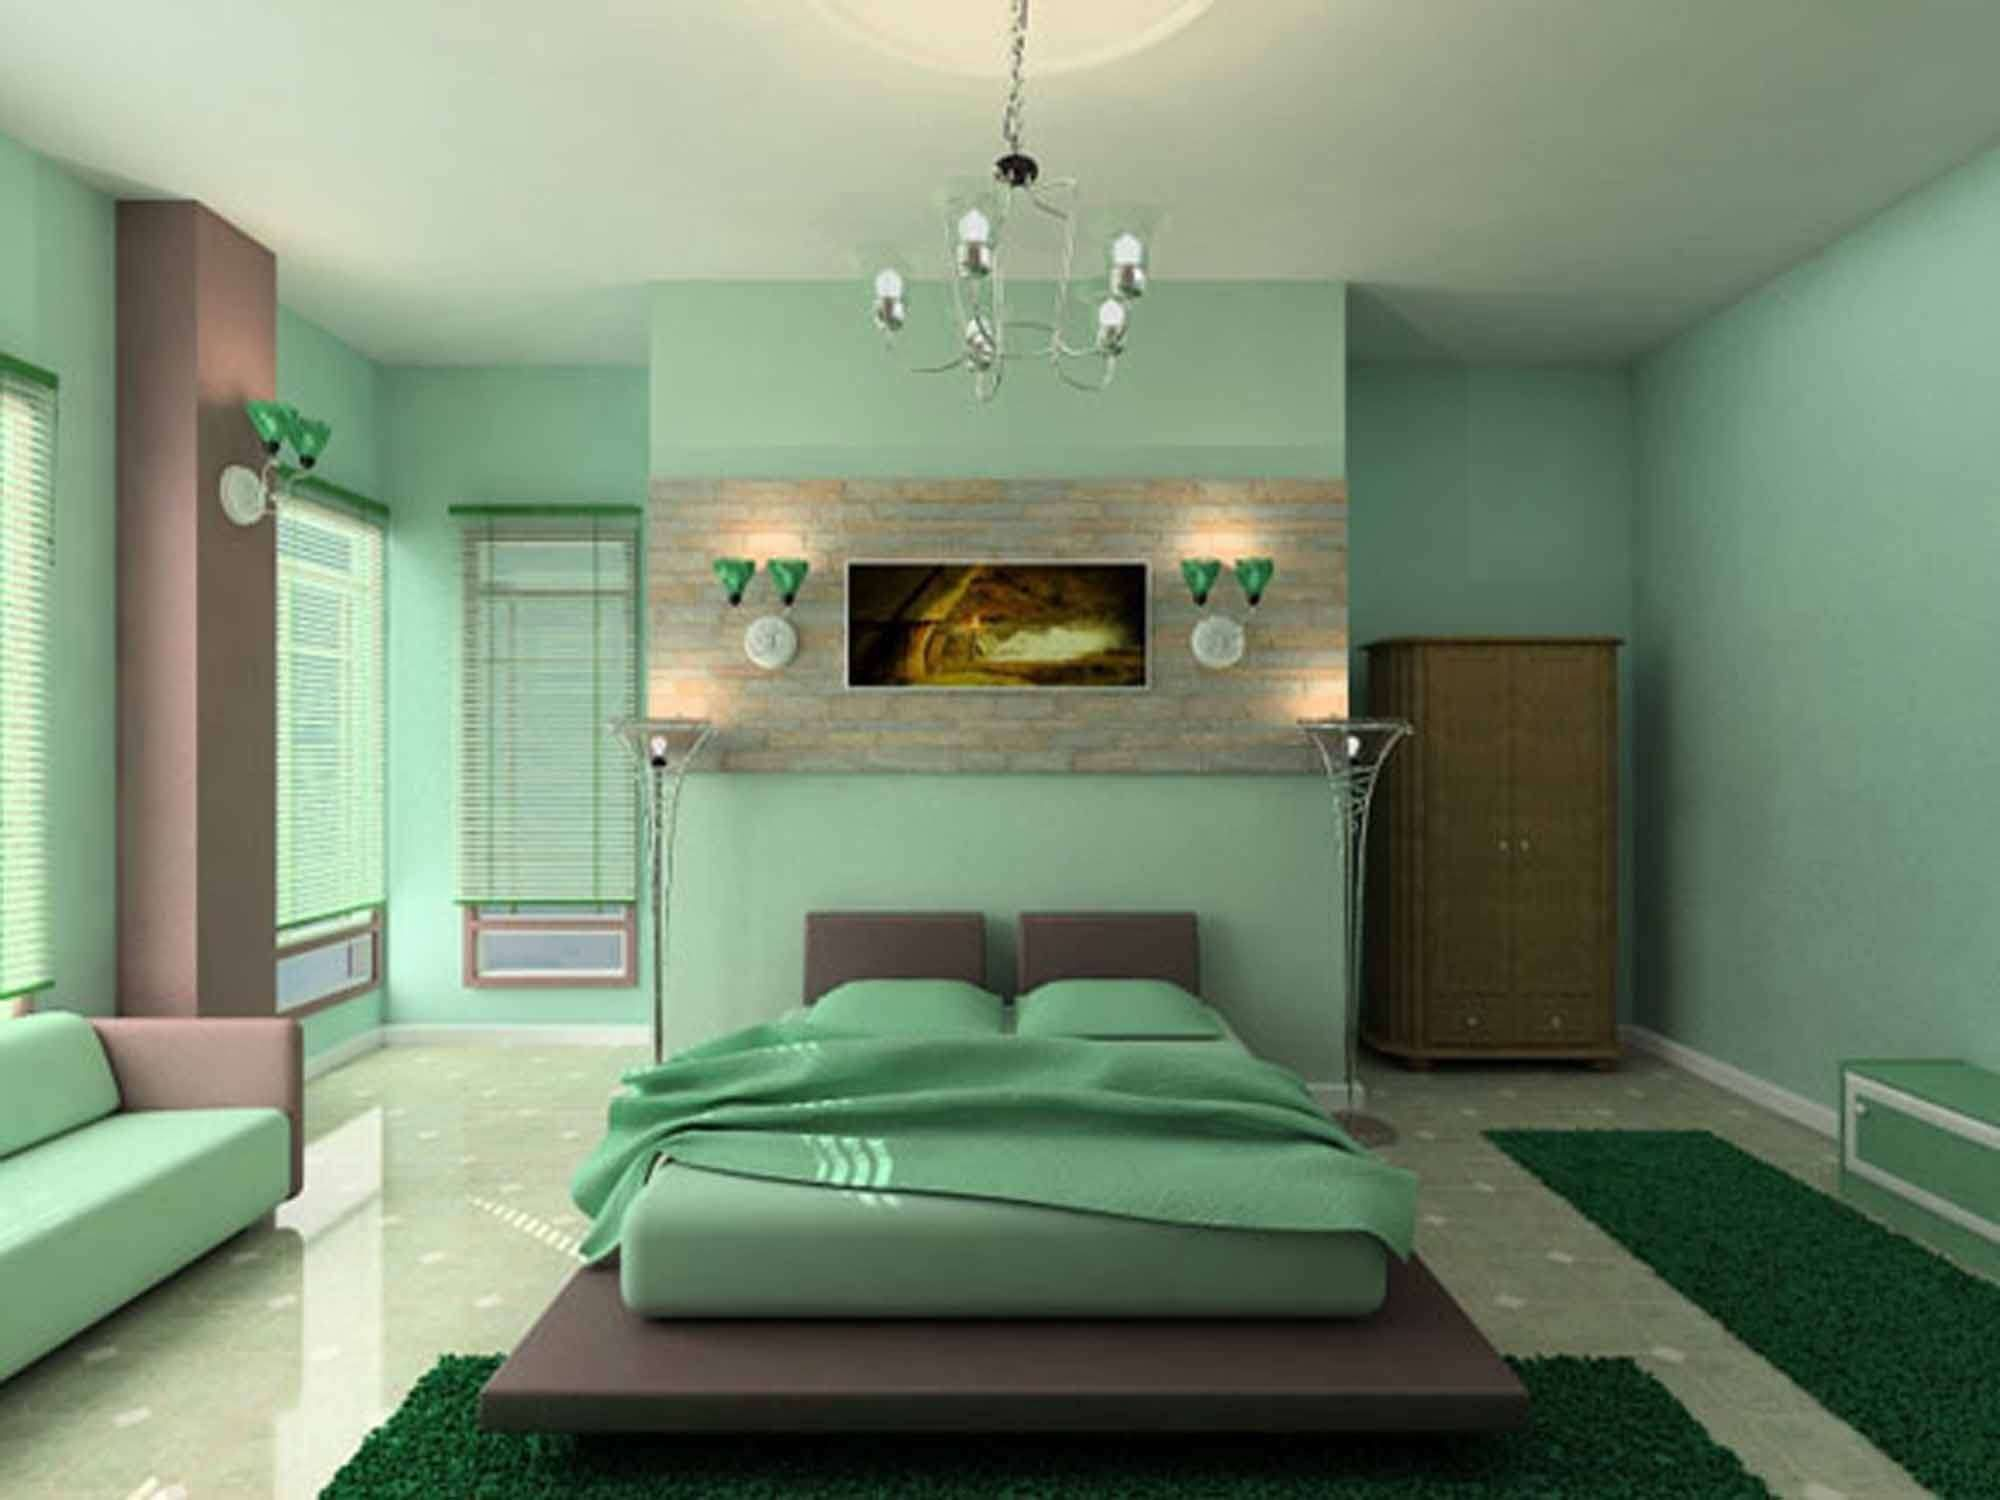 Green Wall Paint For Bedroom Amazing Marvellous Best Paint Color For Small Bedroom And Wall Colors For . Design Inspiration